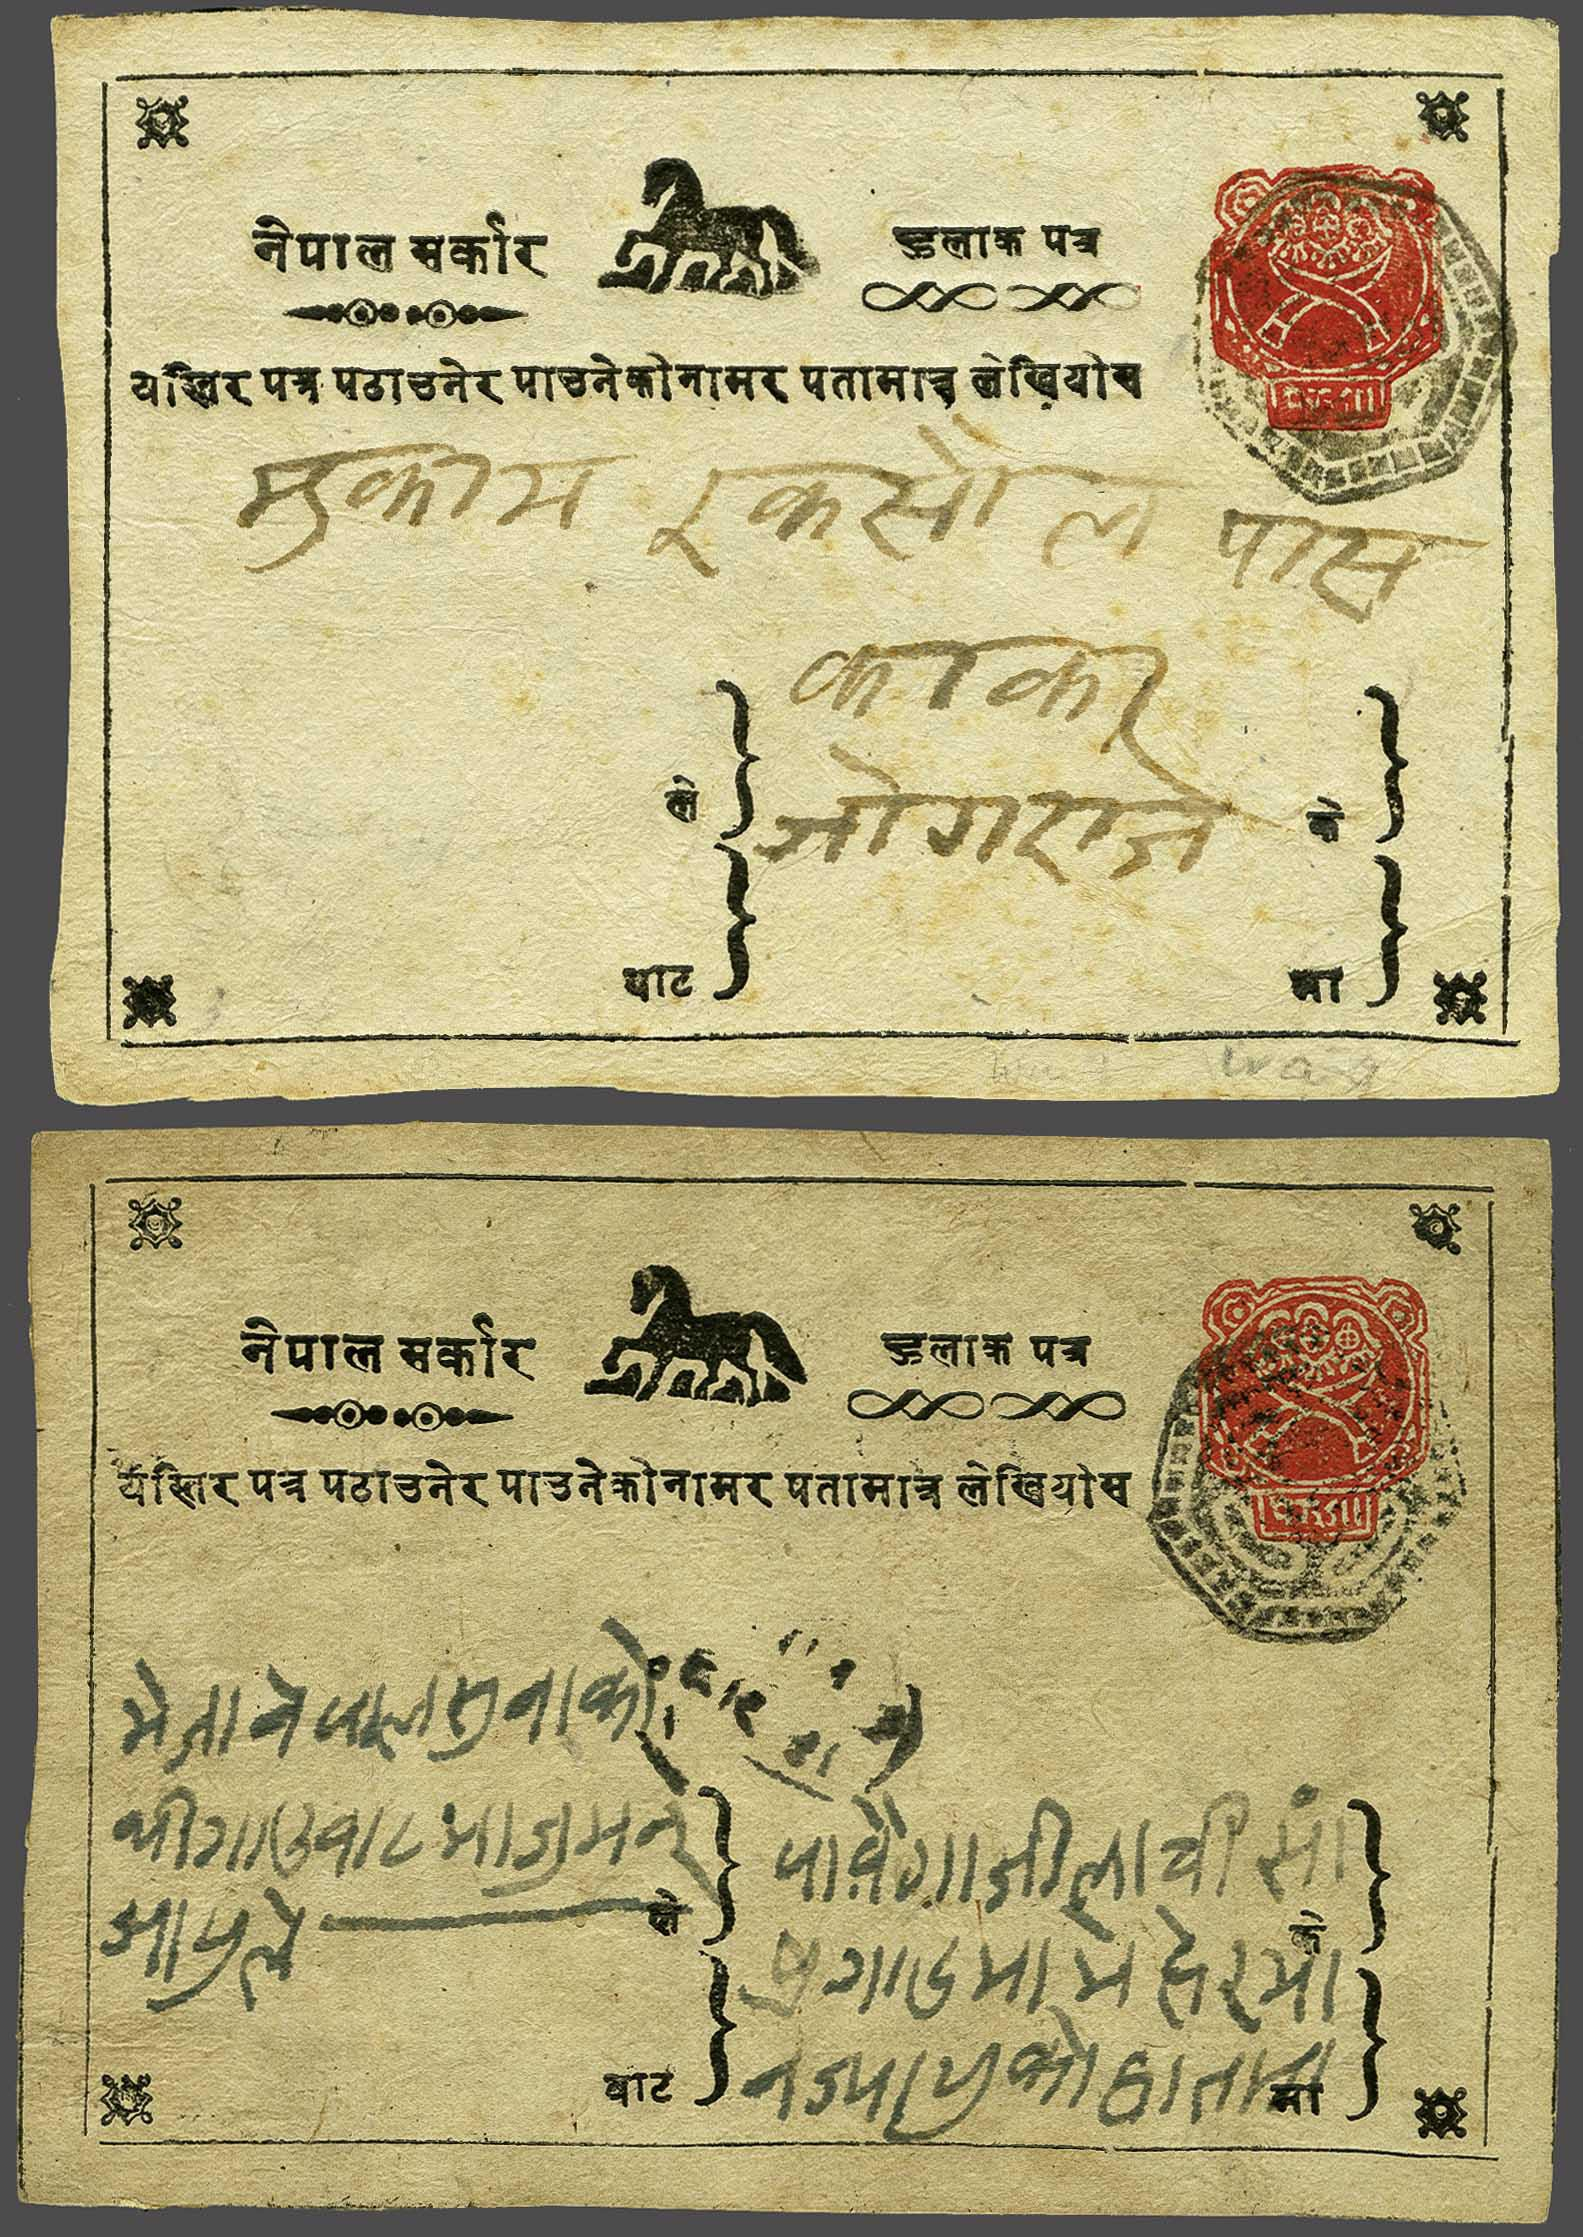 Lot 8 - Great Britain and former colonies Nepal -  Corinphila Veilingen Auction 245-246 Day 1 - Nepal - The Dick van der Wateren Collection, Foreign countries - Single lots, Picture postcards